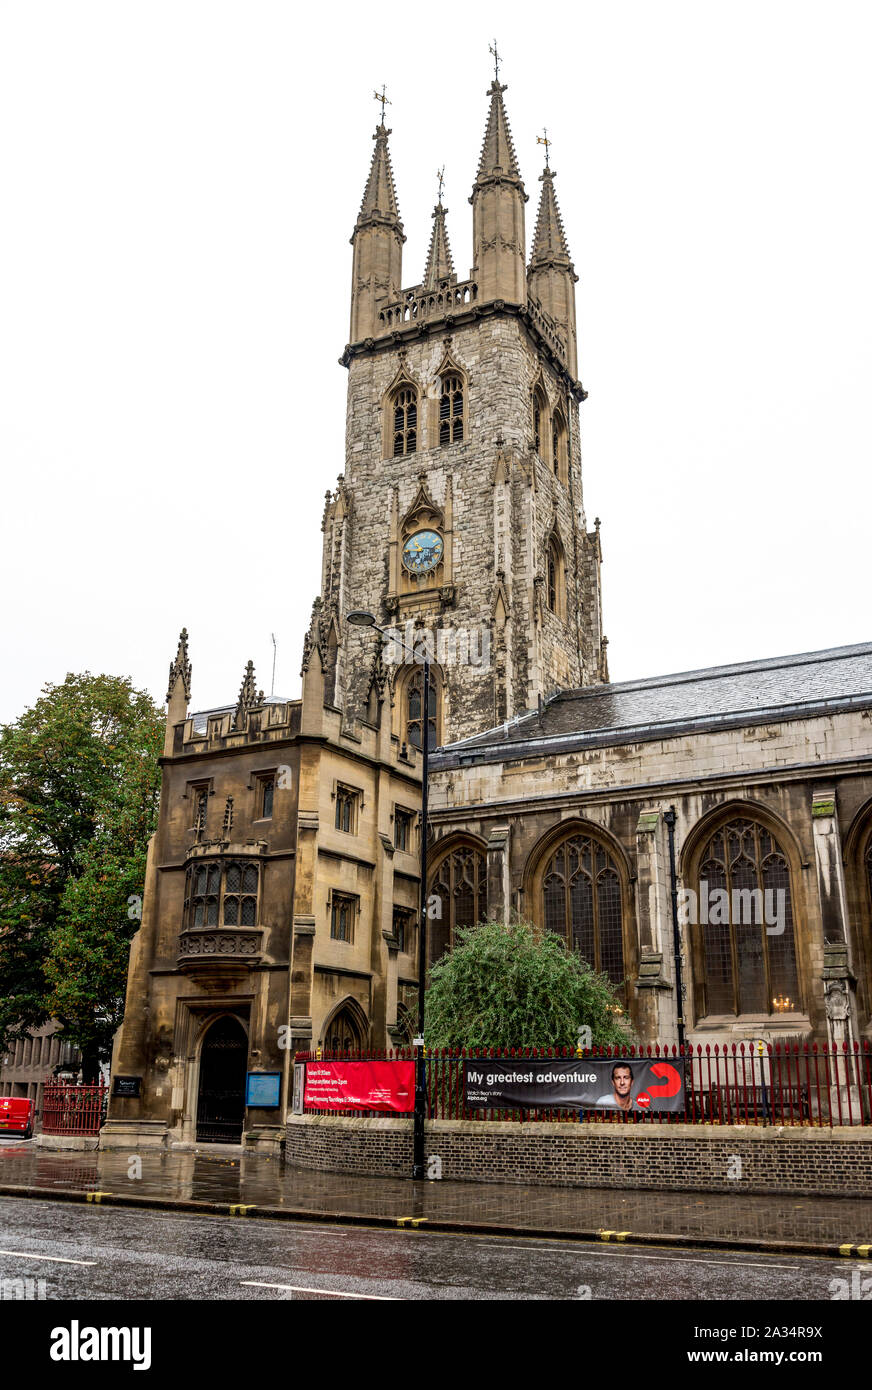 The Church of Holy Sepulchre on Holborn Viaduct in the city centre, London, United Kingdom Stock Photo